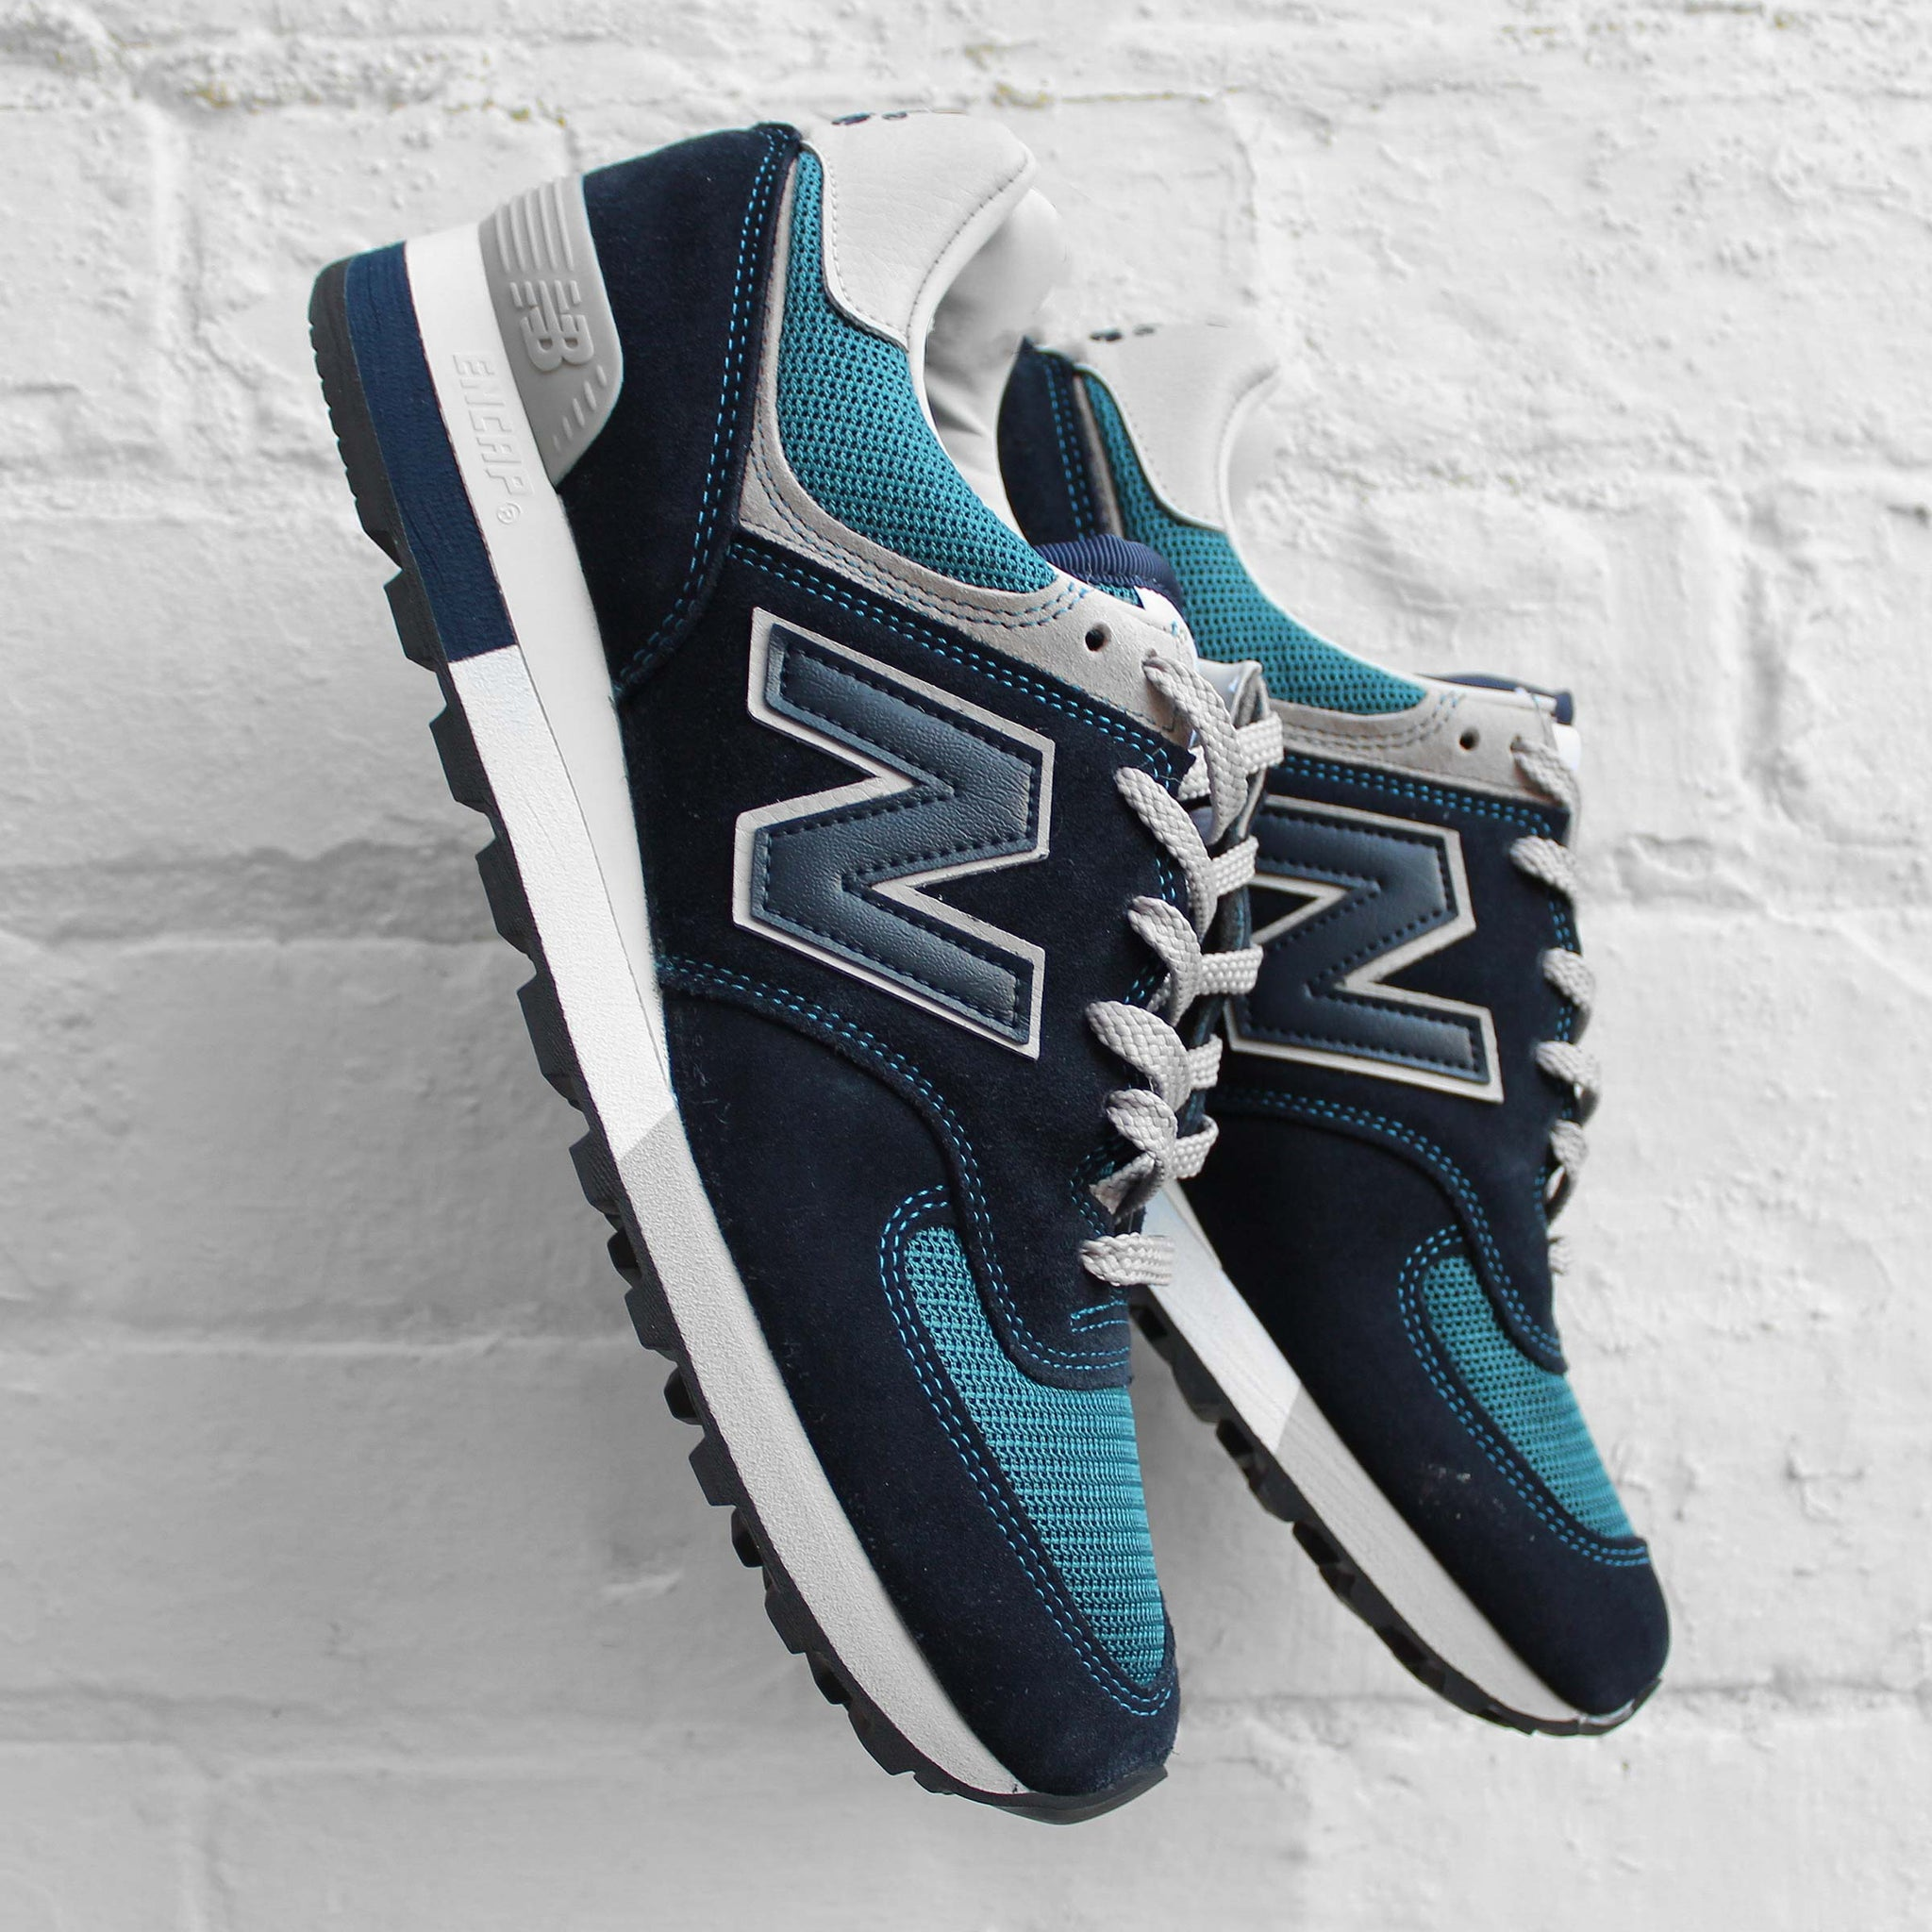 New Balance 576 Navy OM5760GN